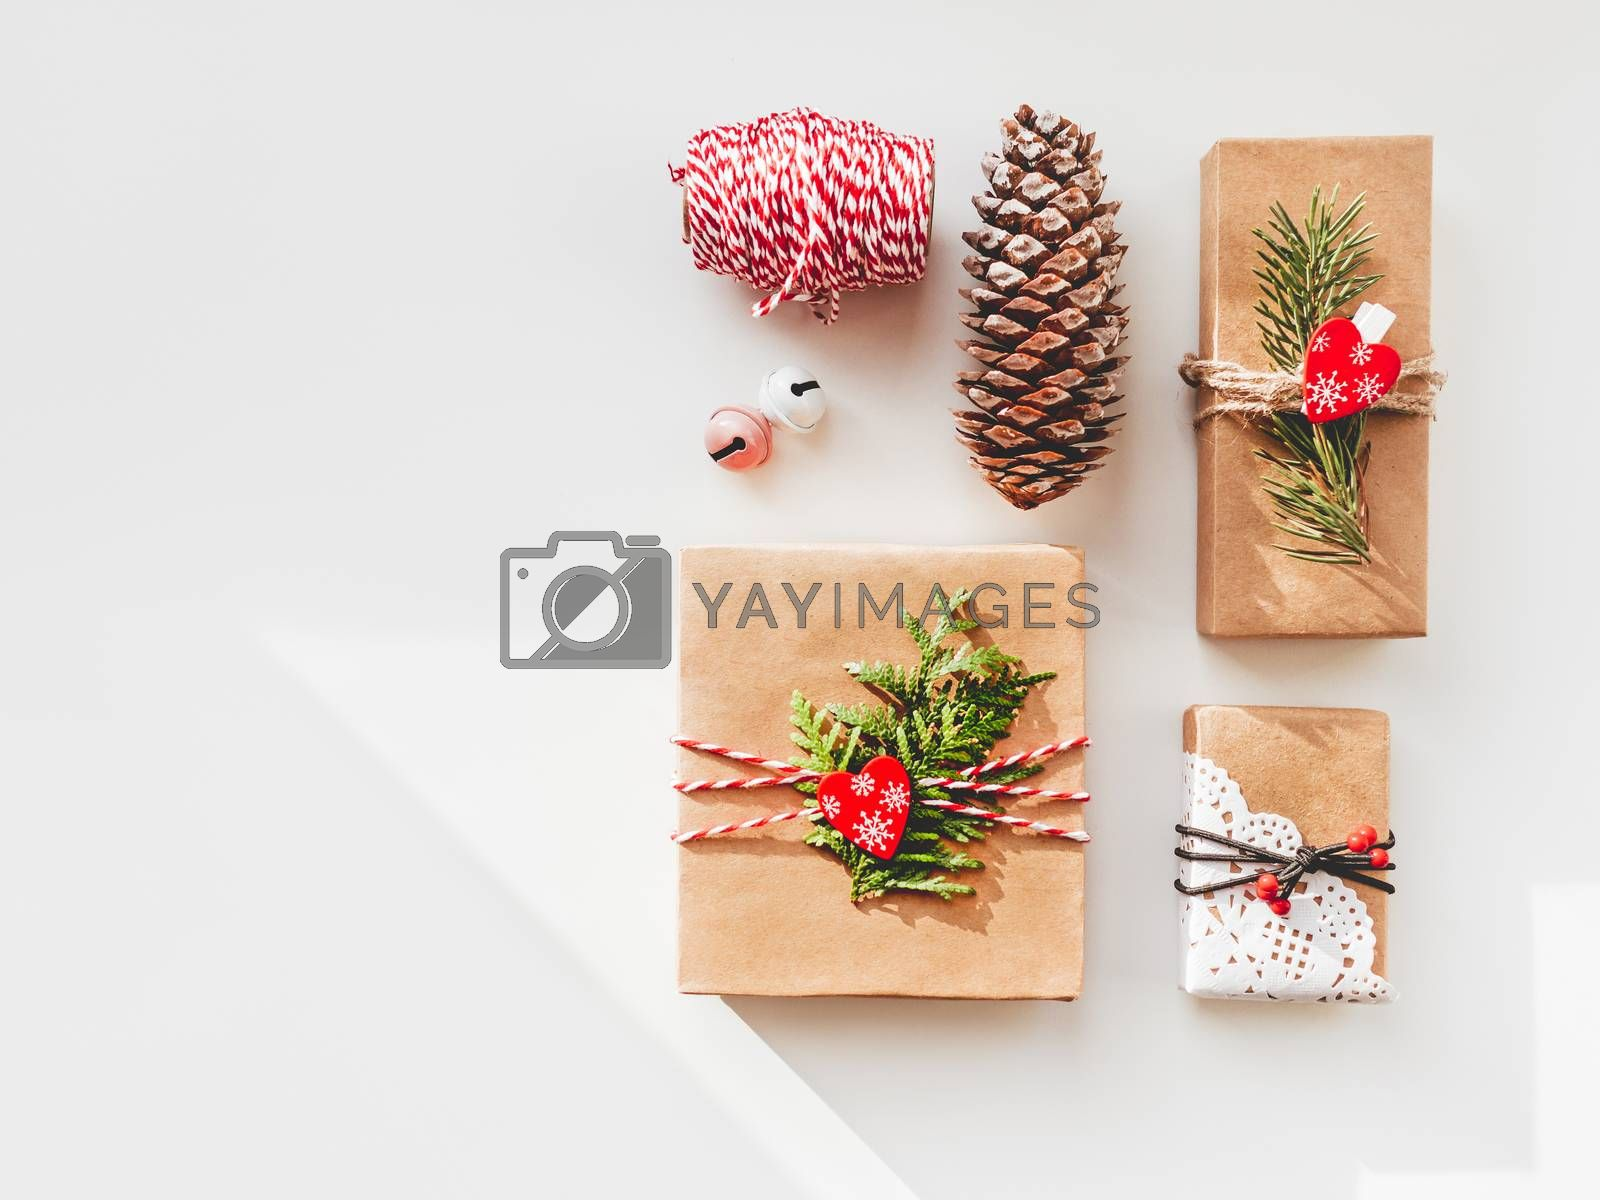 Royalty free image of Christmas DIY presents wrapped in craft paper with fir tree twigs and red hearts. Top view on decorations on New Year gifts. Festive background. Winter holiday spirit. Banner with copy space. by aksenovko